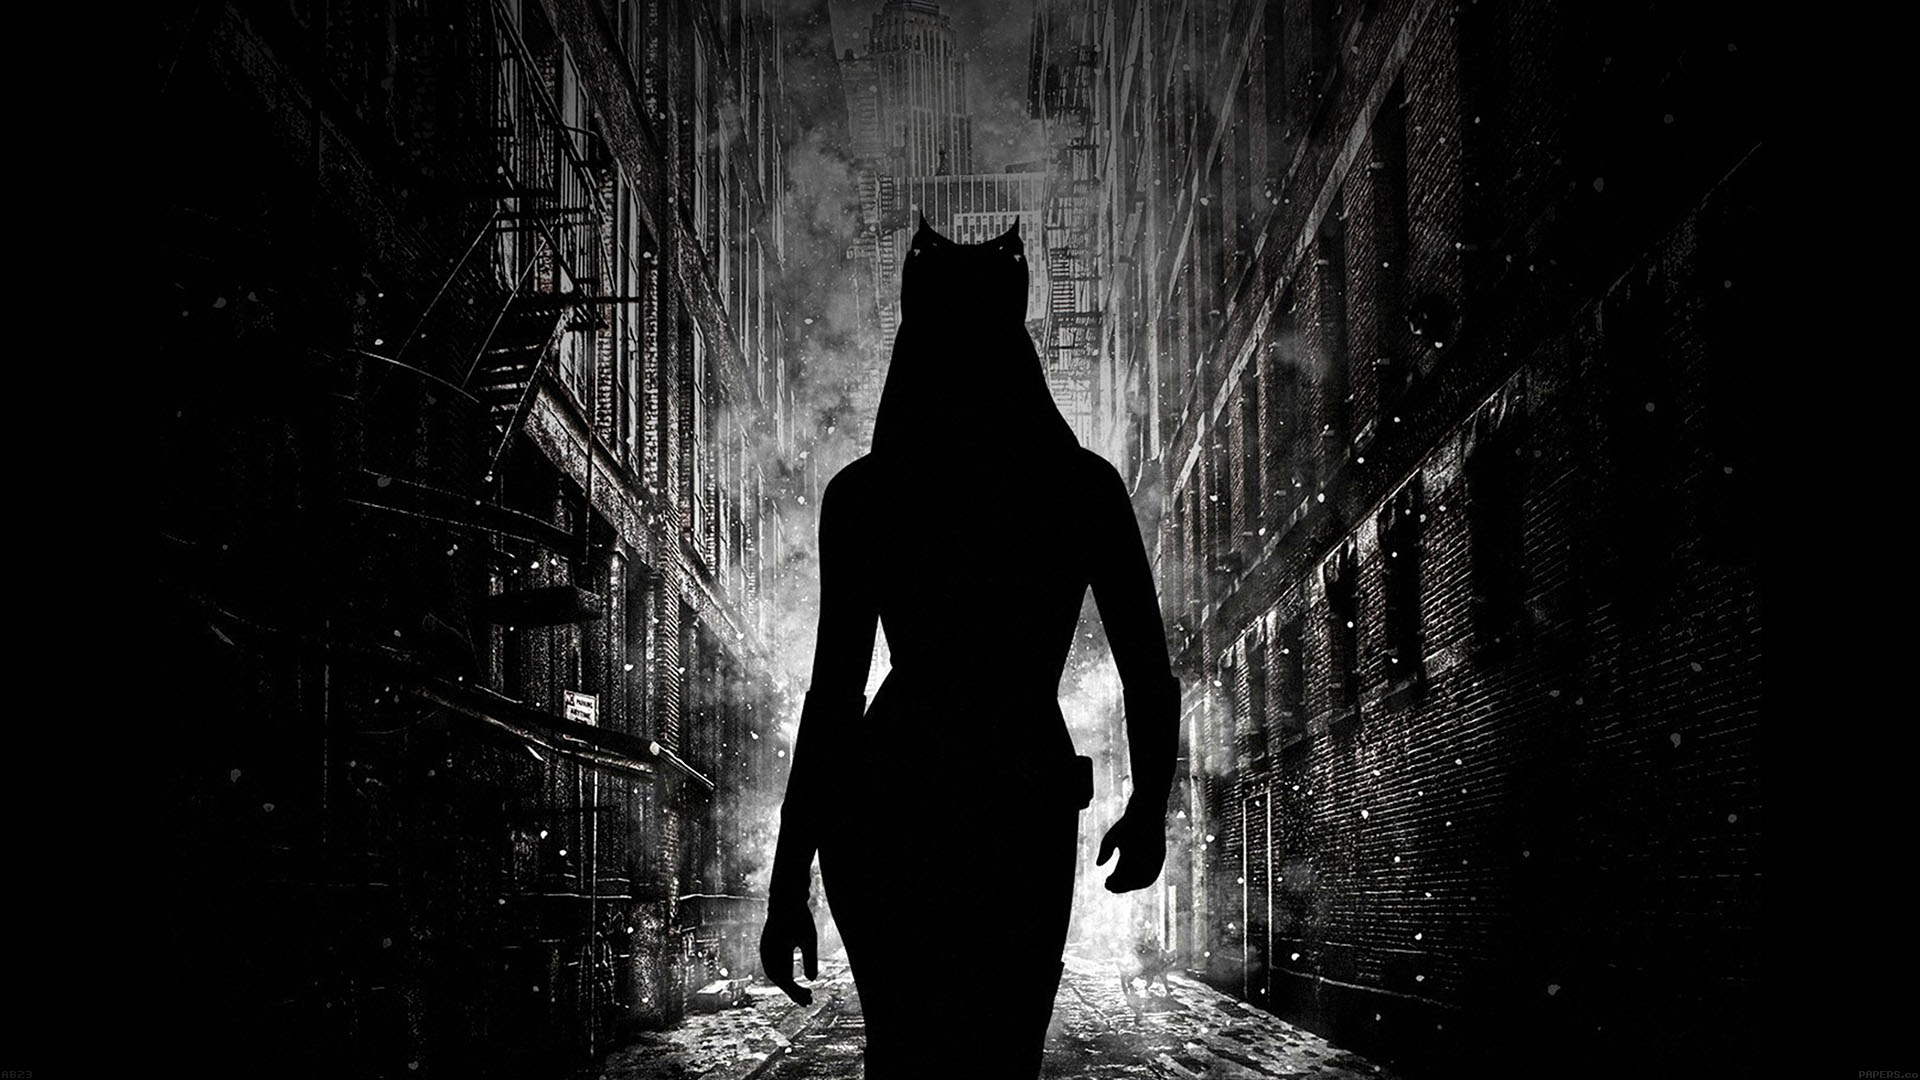 ab23-wallpaper-catwoman-walking-dark - Papers.co